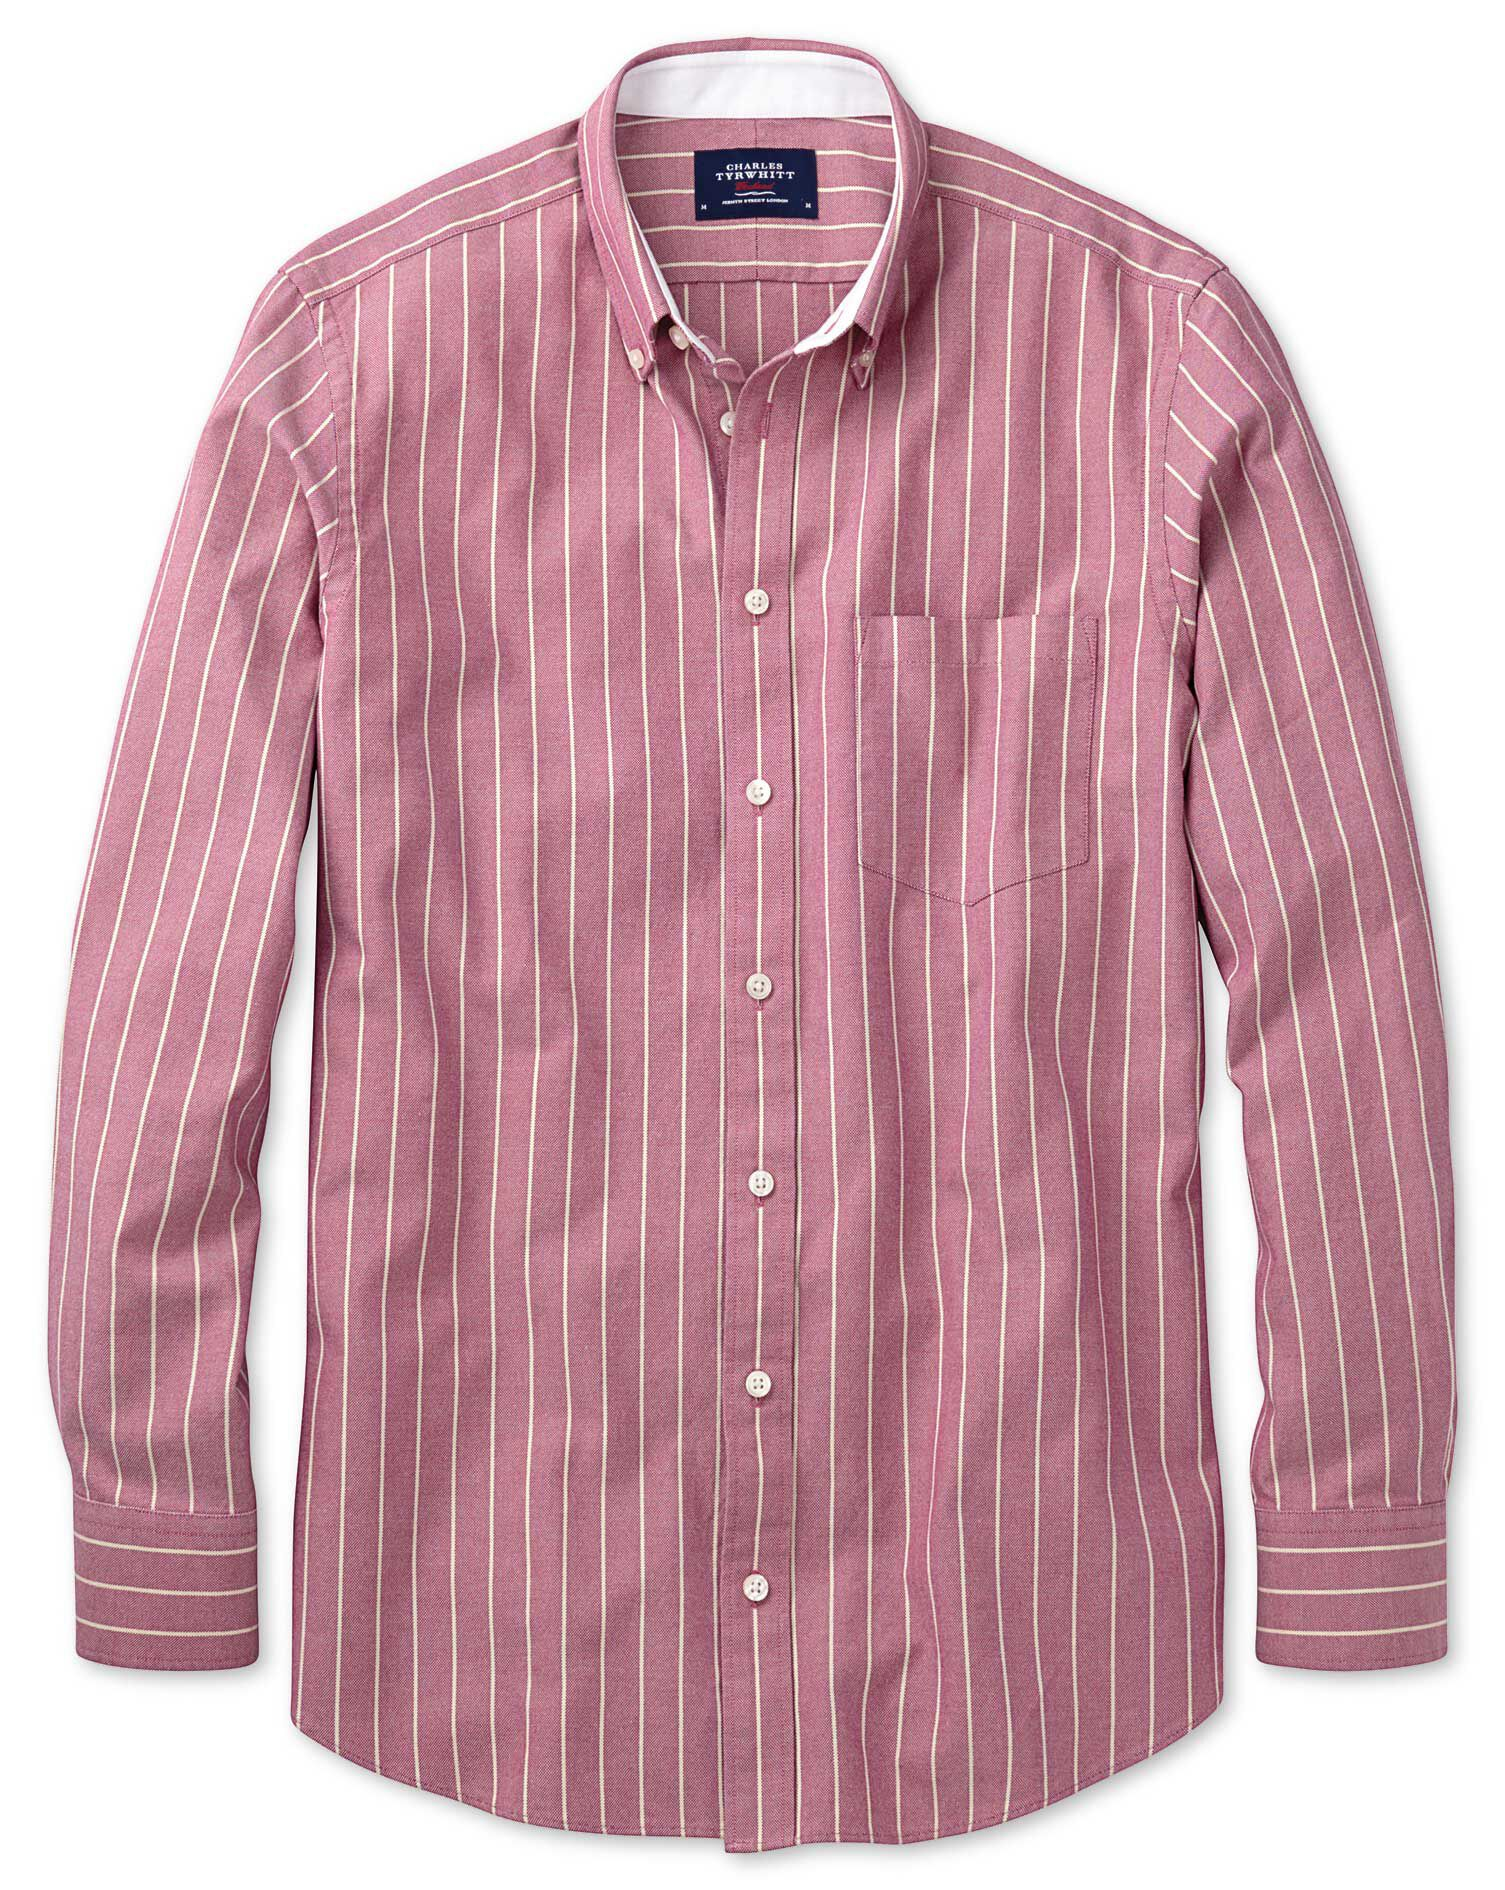 Classic Fit Magenta Stripe Washed Oxford Cotton Shirt Single Cuff Size Medium by Charles Tyrwhitt